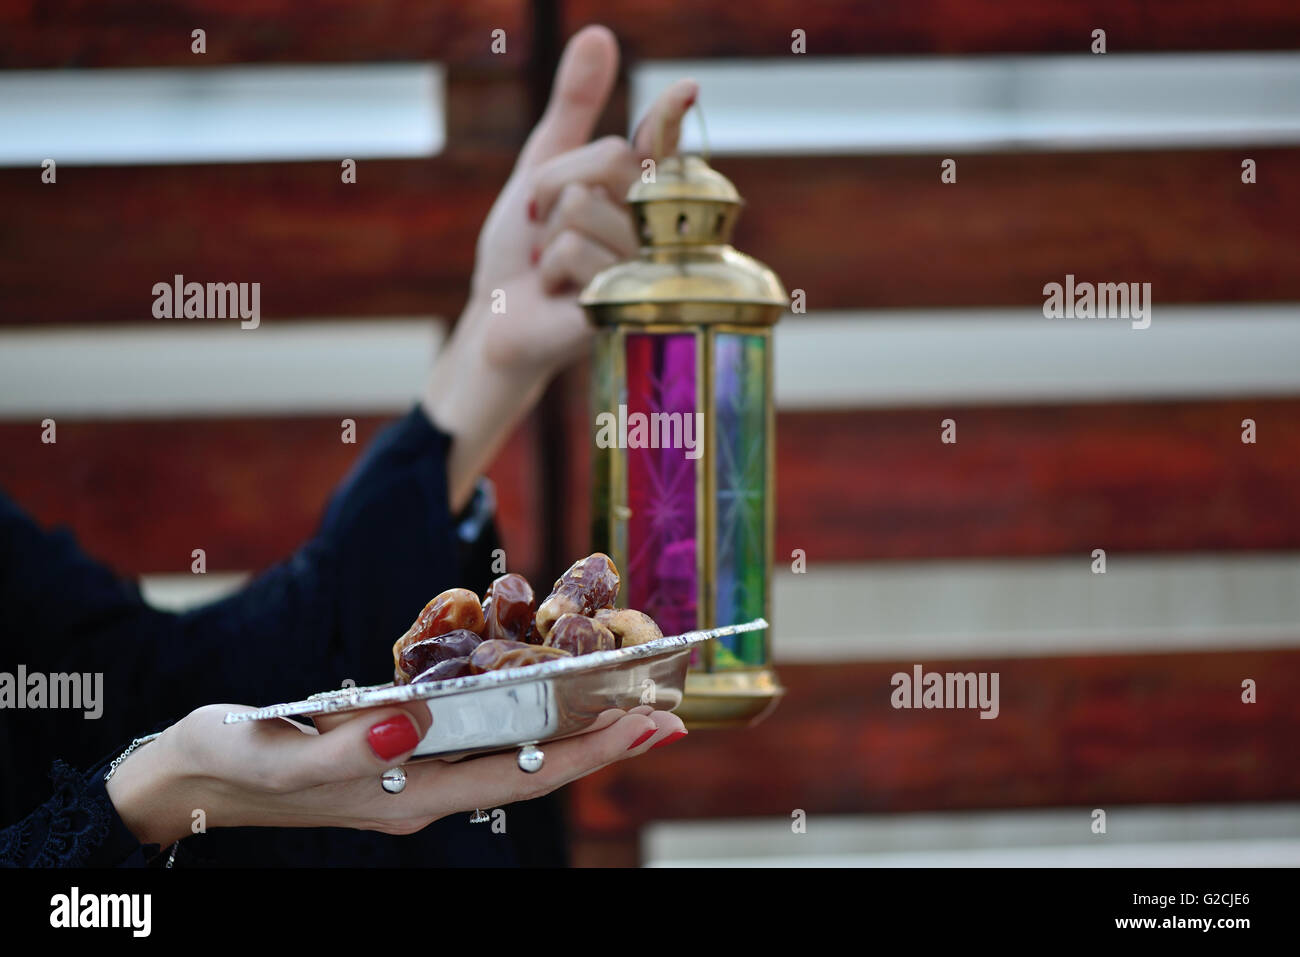 Emarati Arab woman holding dates plate and Ramadan Lamp, Dubai, United Arab Emirates. - Stock Image